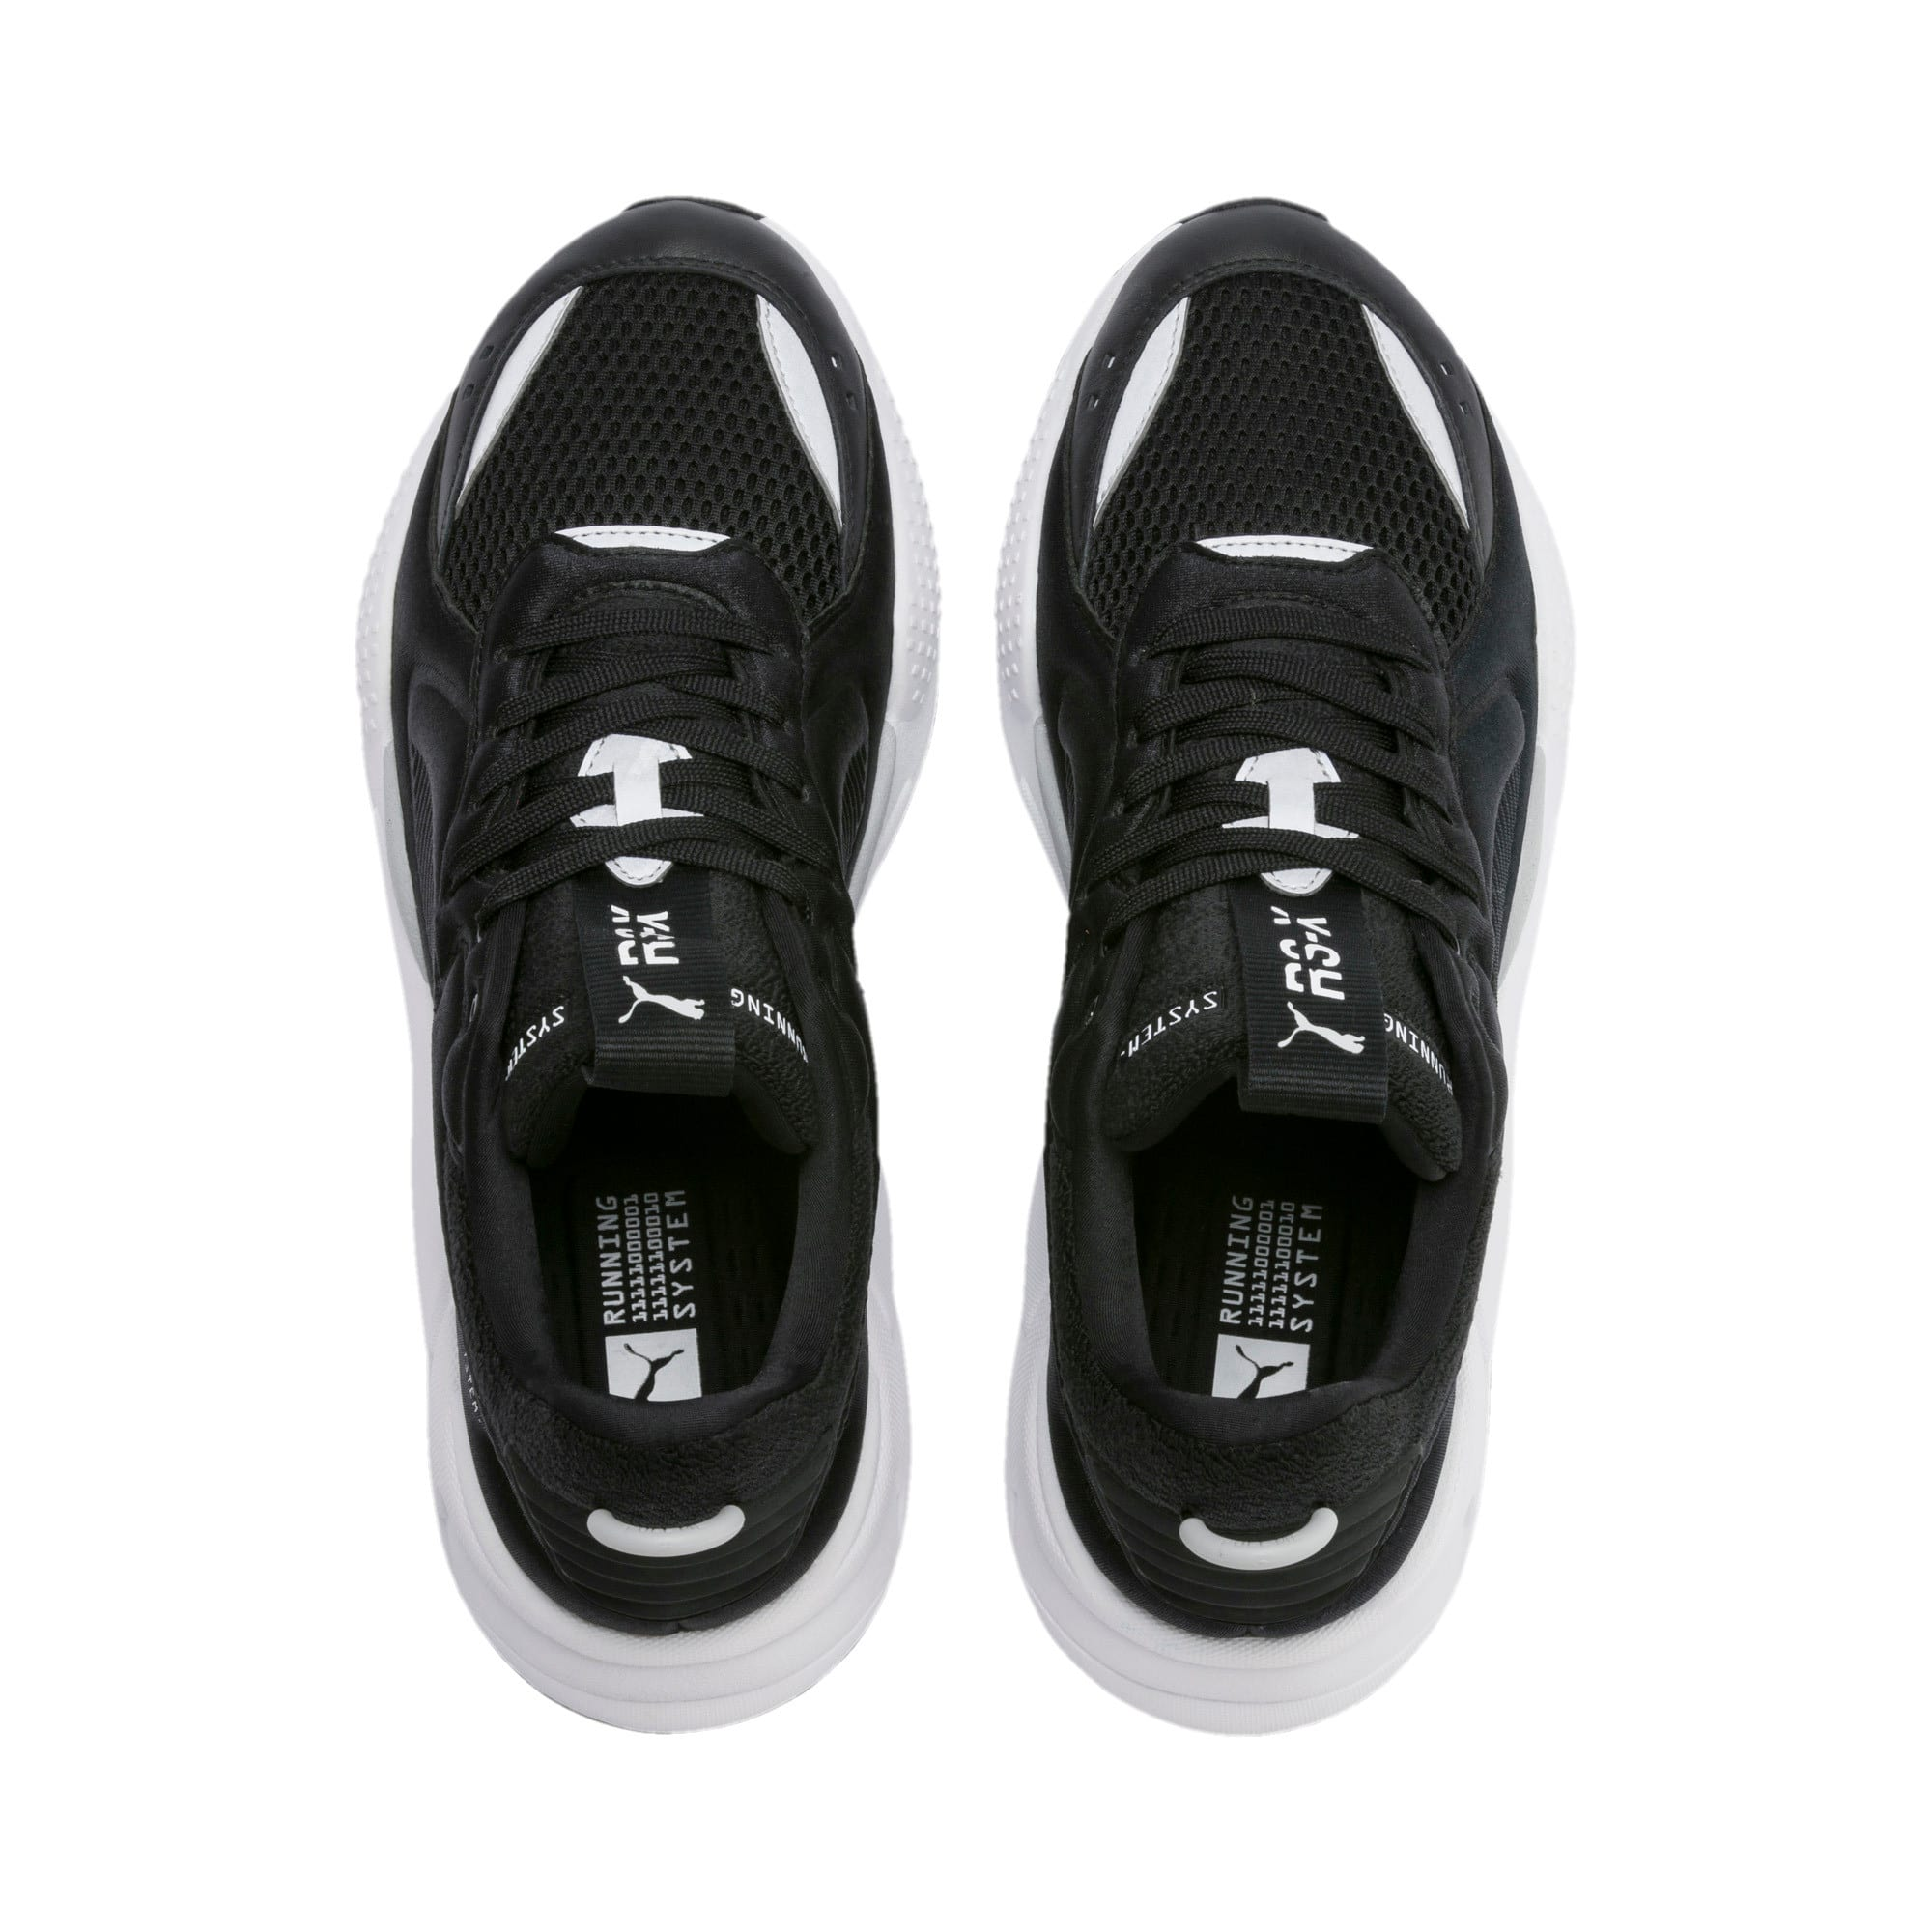 RS-X Softcase Sneakers, Puma Black-Puma White, large